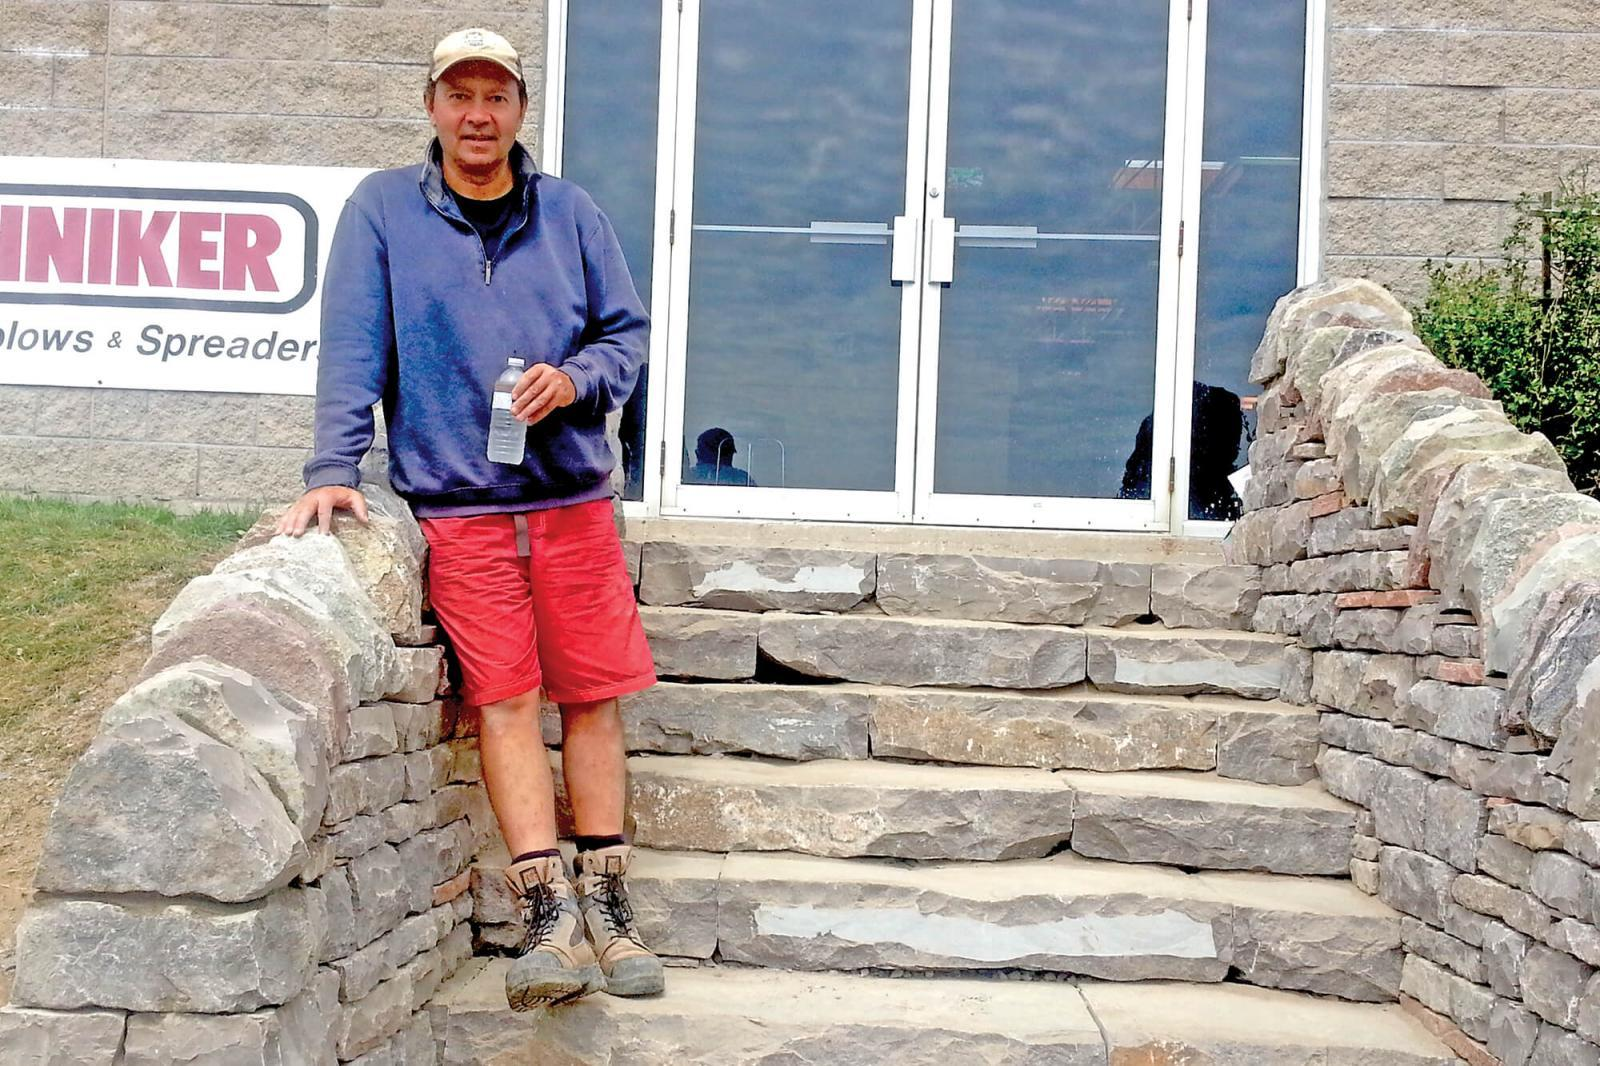 Dean McClellan and a crew from the Saugeen Shores First Nations did an amazing job at building the dry stone steps at LO home office at the entrance to Vanden Bussche Irrigation.